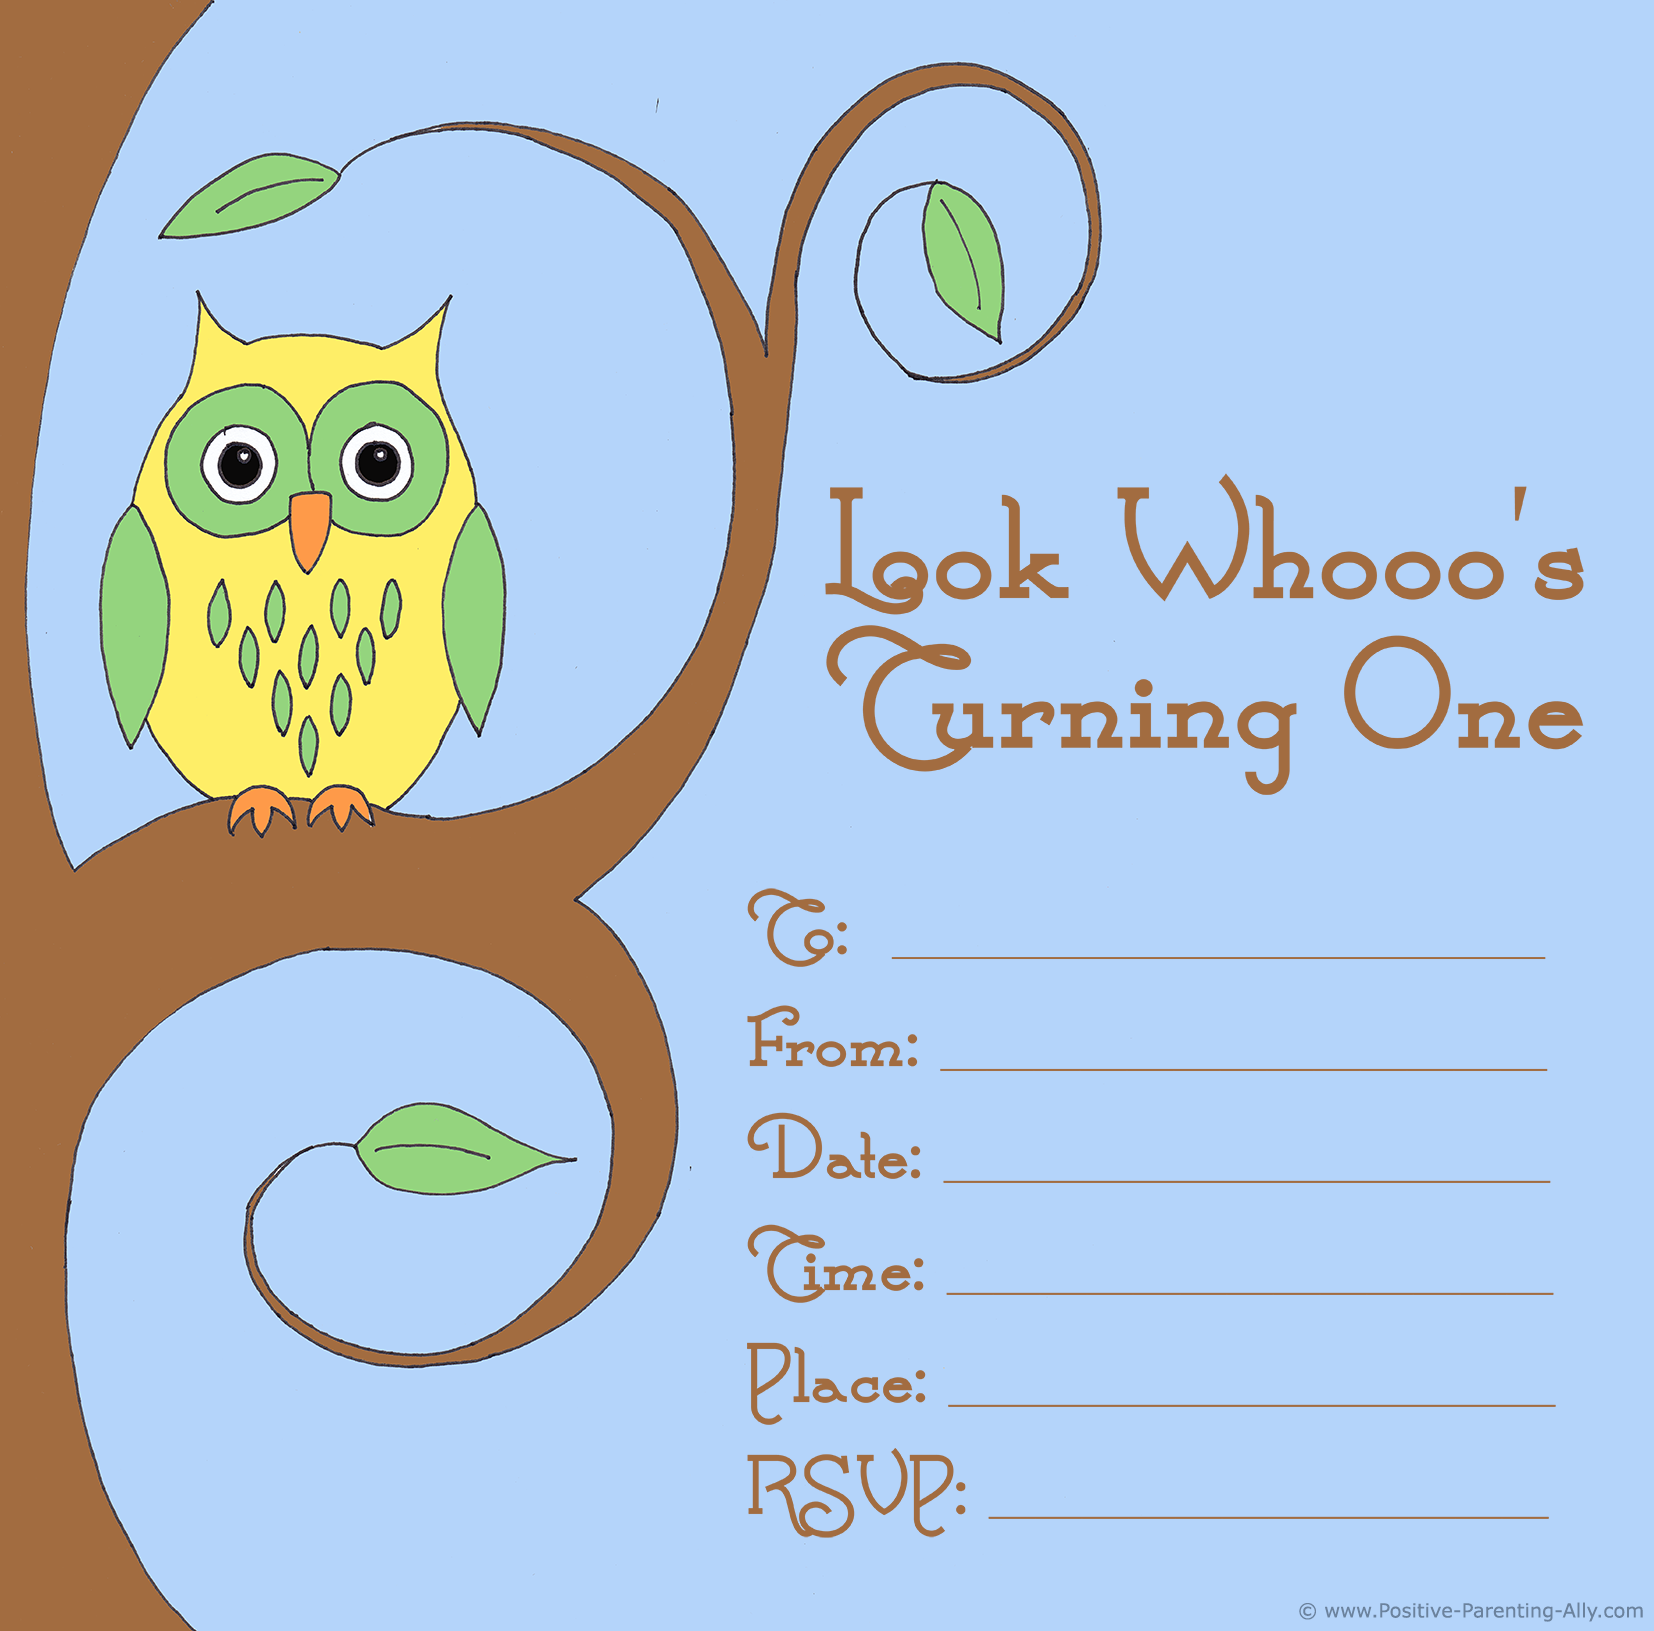 Printable and free first birthday party invitation with colorful owl retro theme.